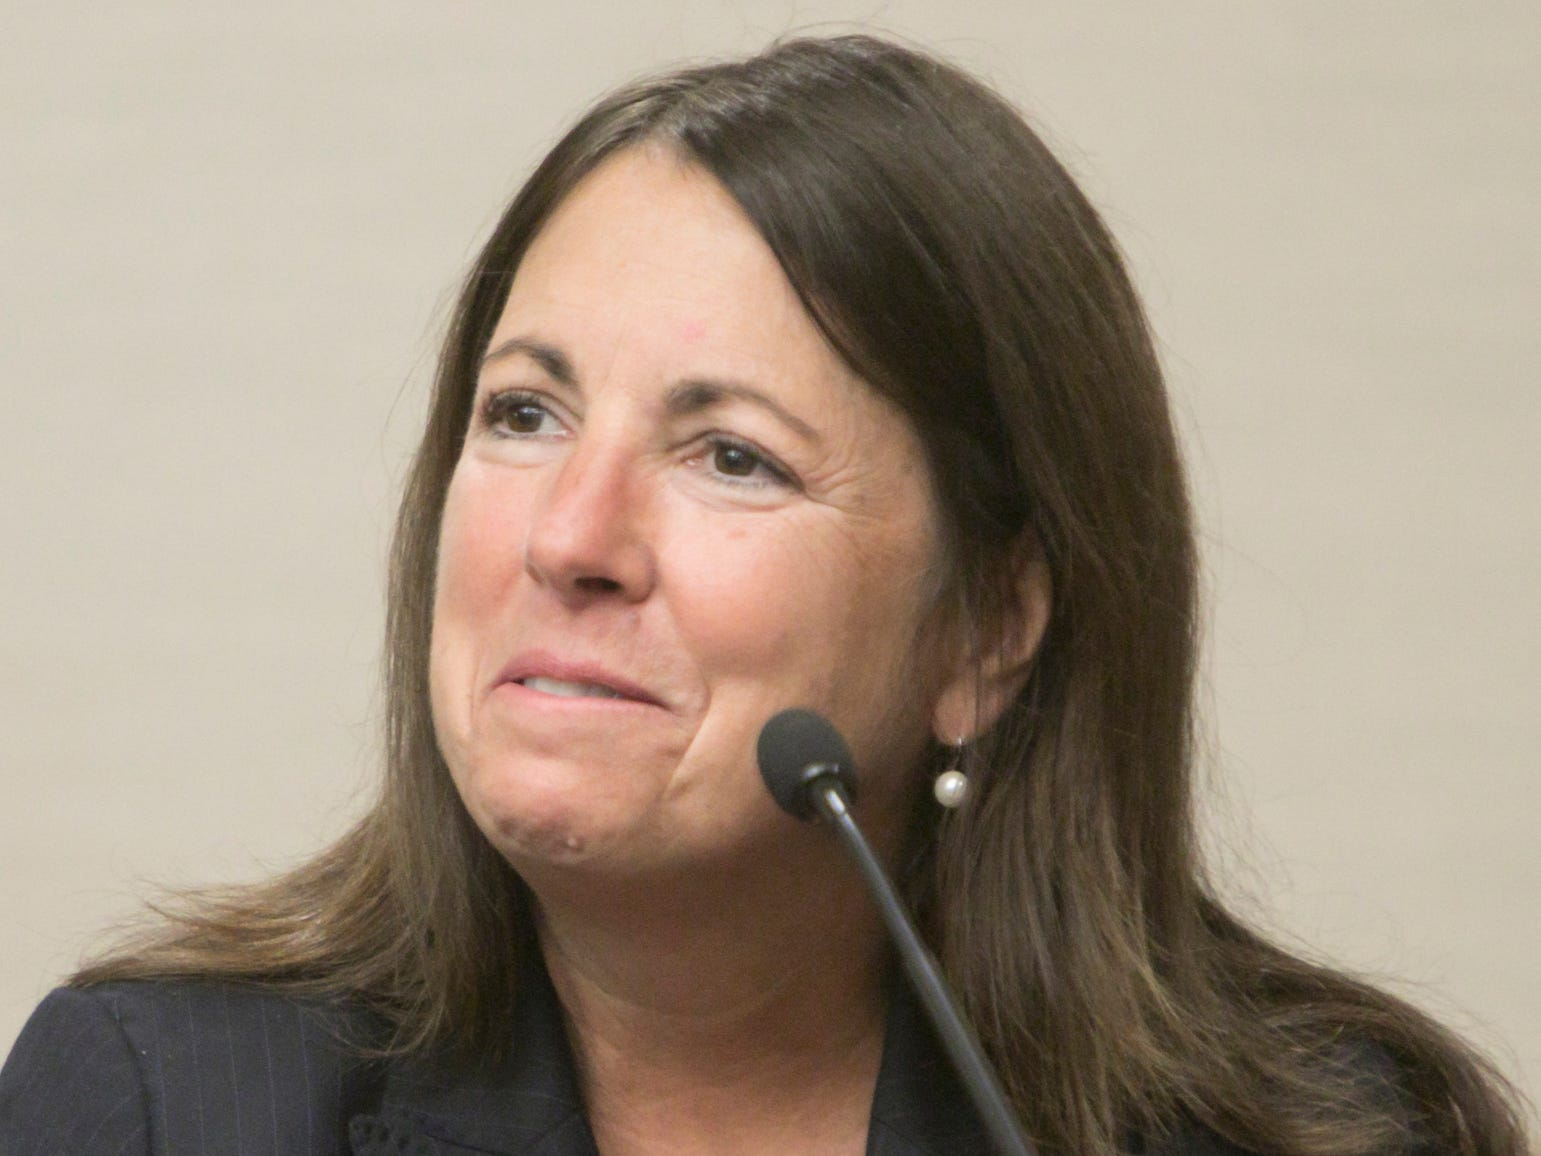 Judge Theresa Brennan smiles as she recounts how she came to be District Court judge Monday, Oct. 8, 2018 during an evidentiary hearing held by the Michigan Judicial Tenure Commission.